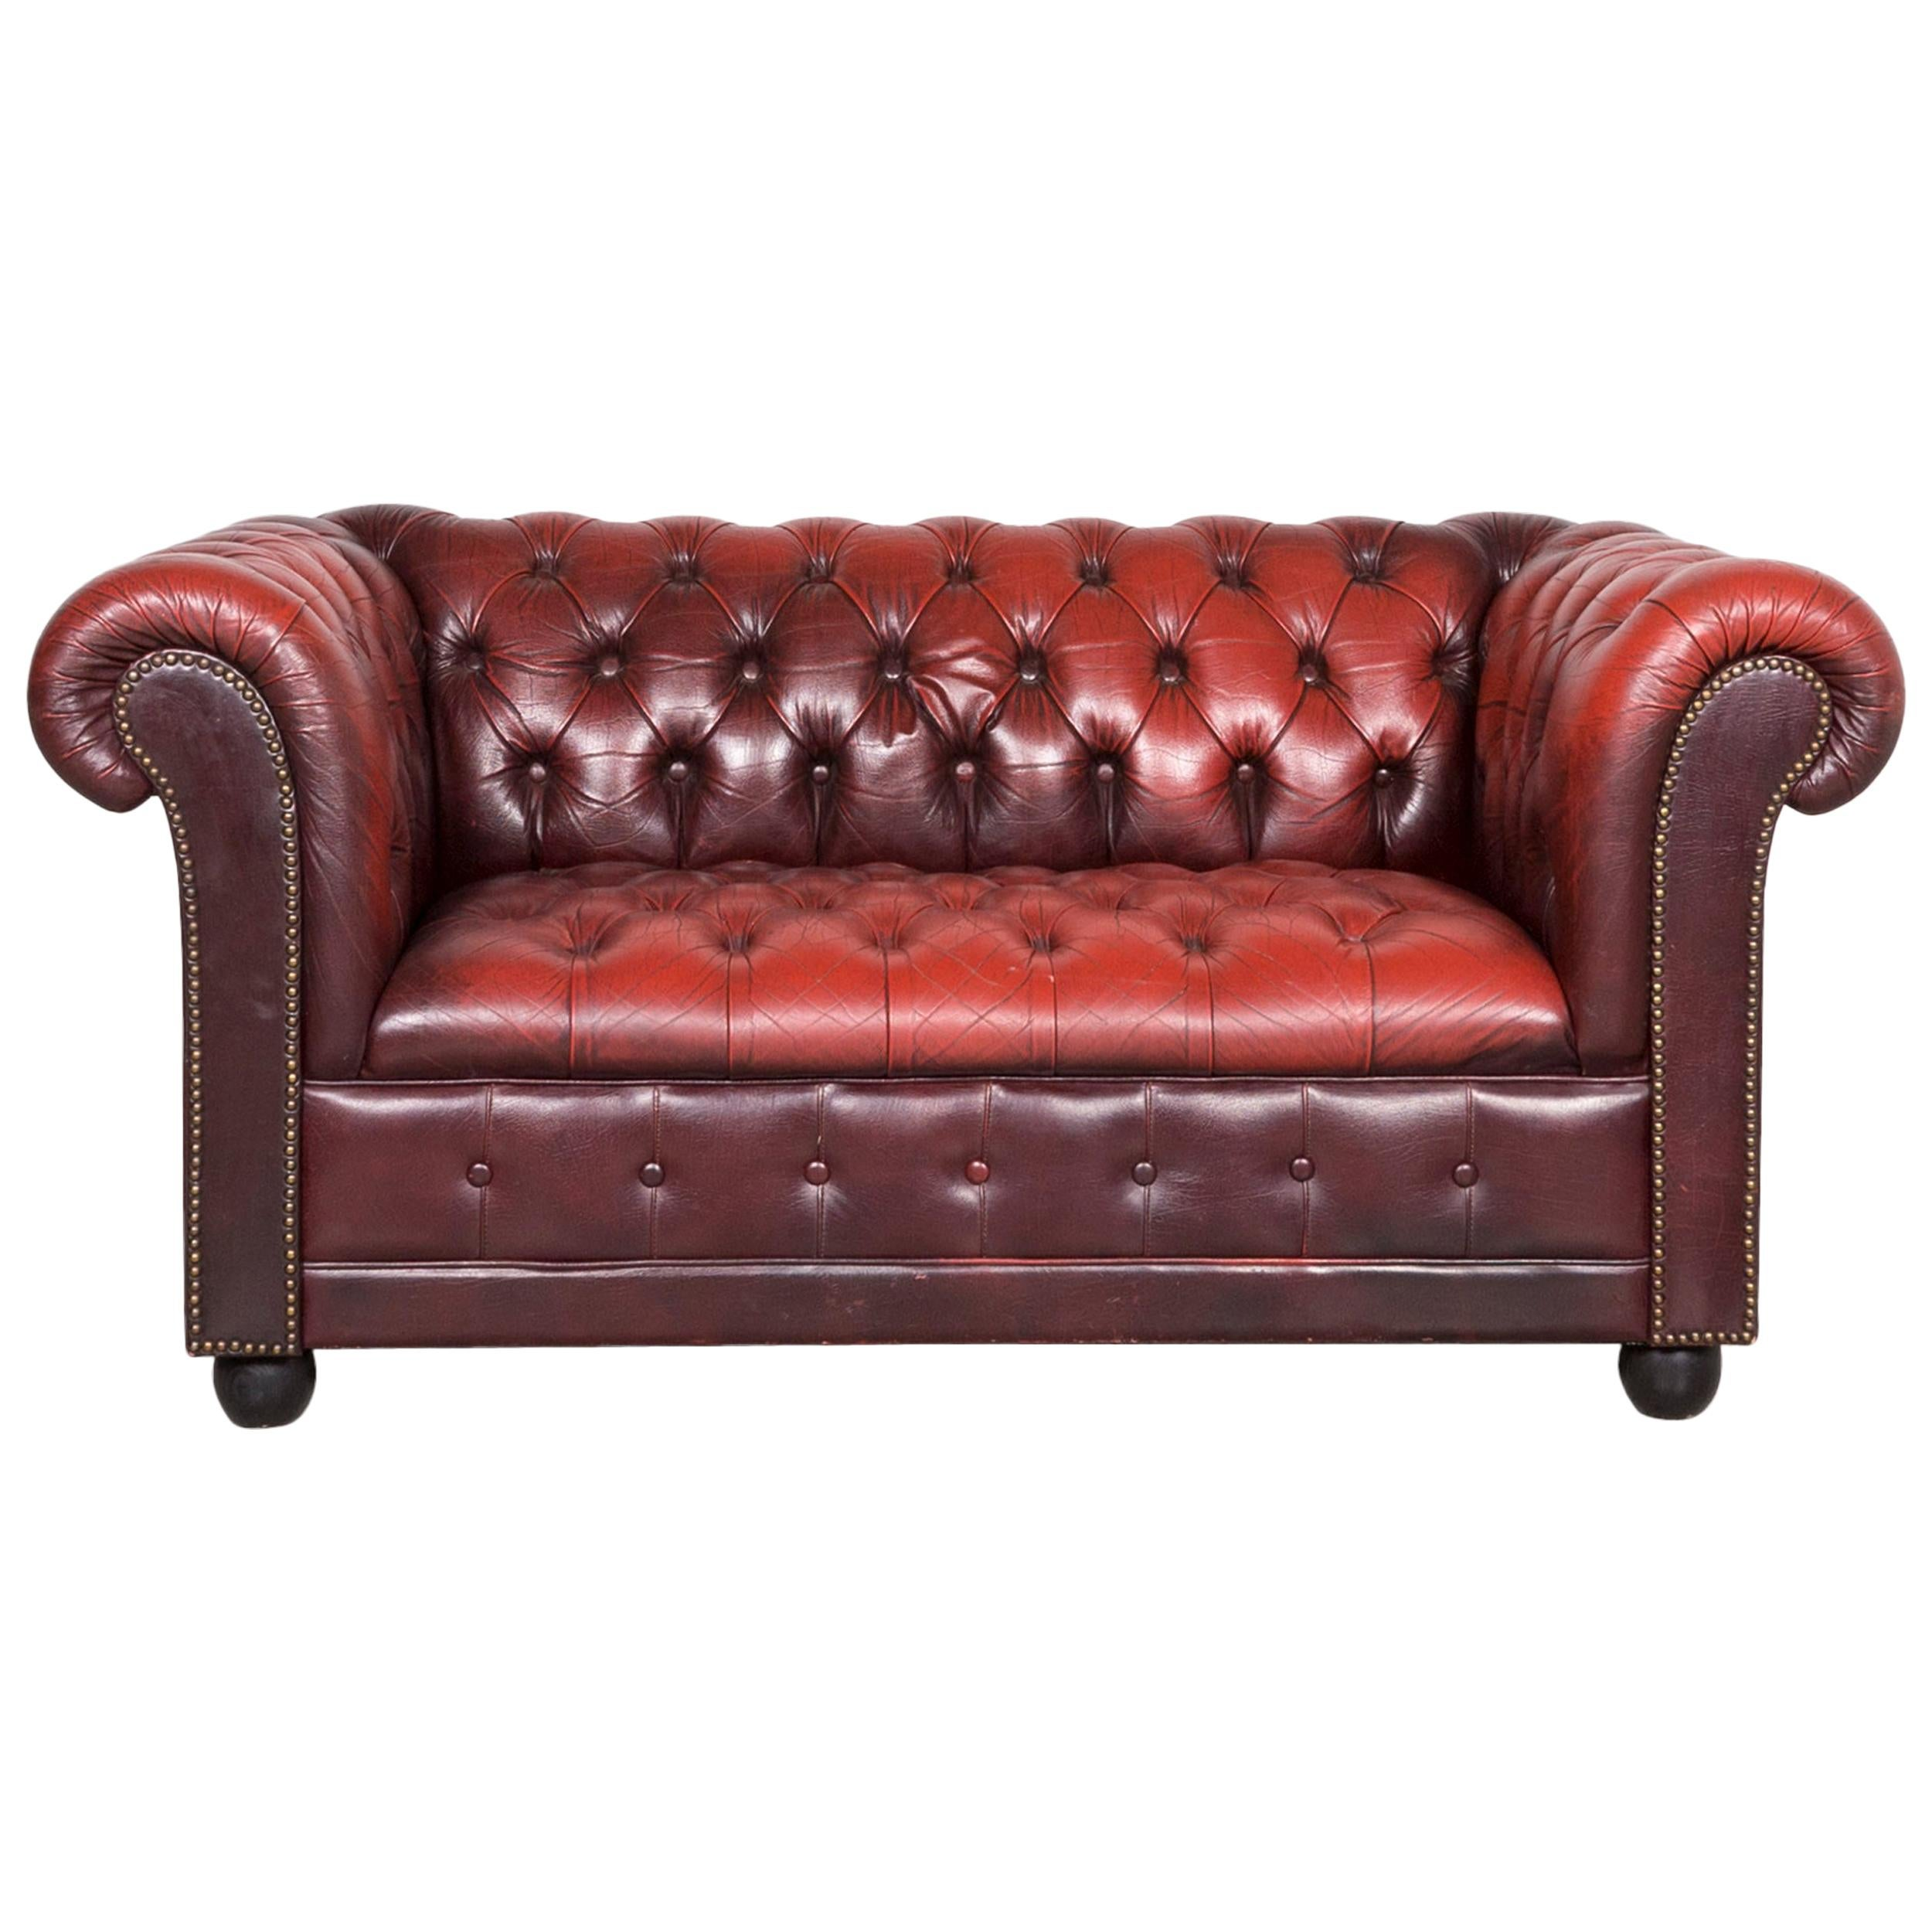 Chesterfield Leather Sofa Oxblood Red Three-Seat Couch Retro Vintage